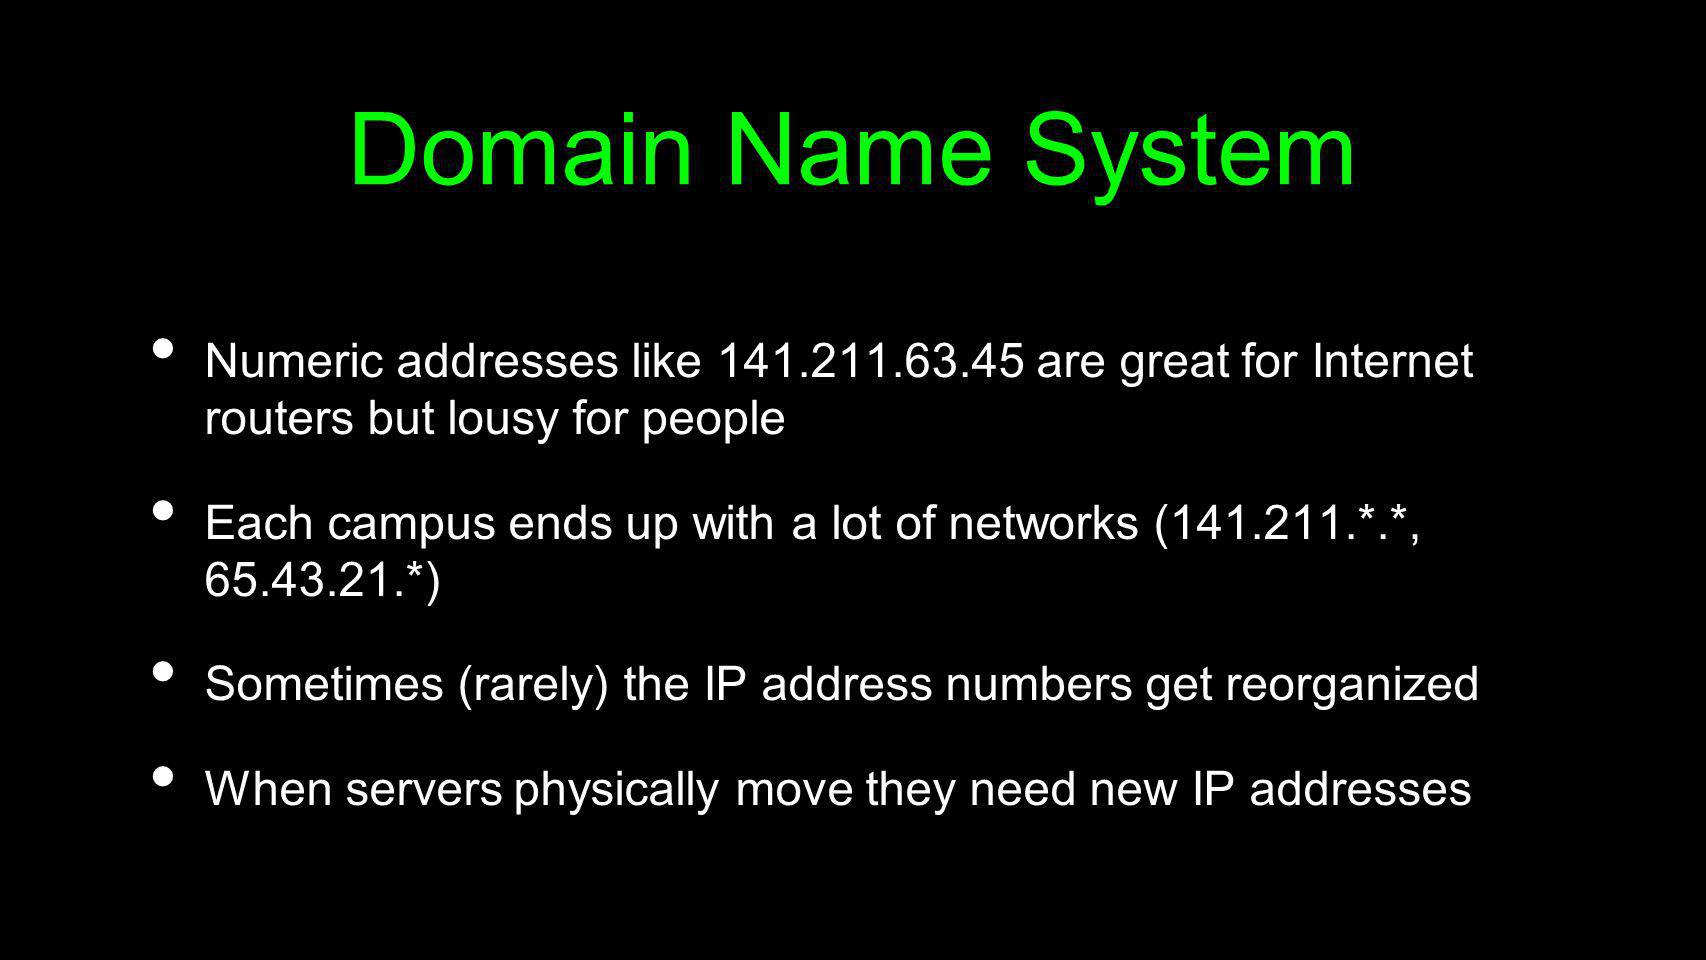 Domain Name System Numeric addresses like 141.211.63.45 are great for Internet routers but lousy for people.